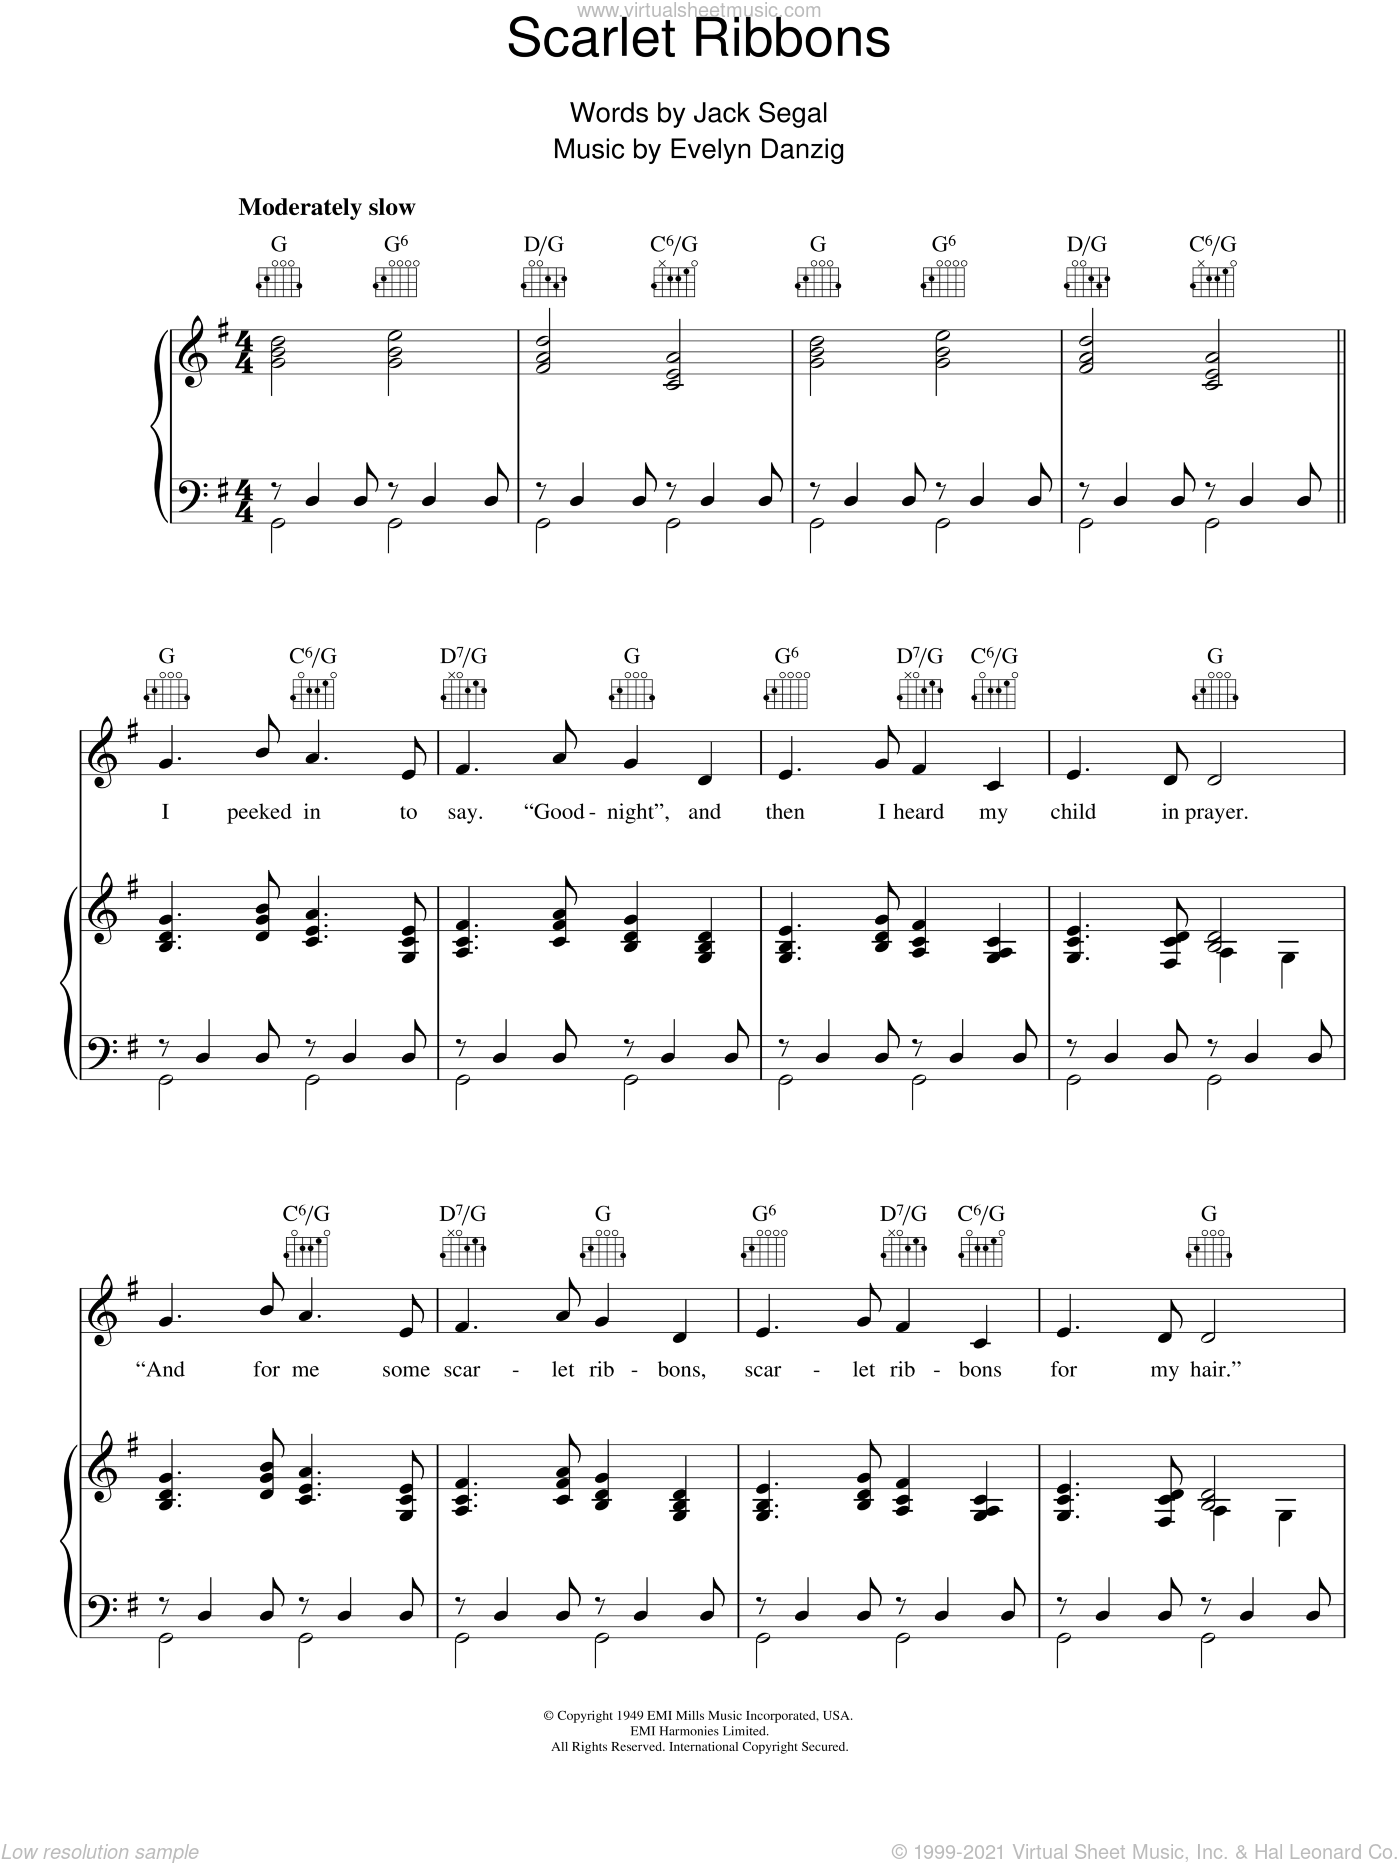 Scarlet Ribbons sheet music for voice, piano or guitar by Jack Segal